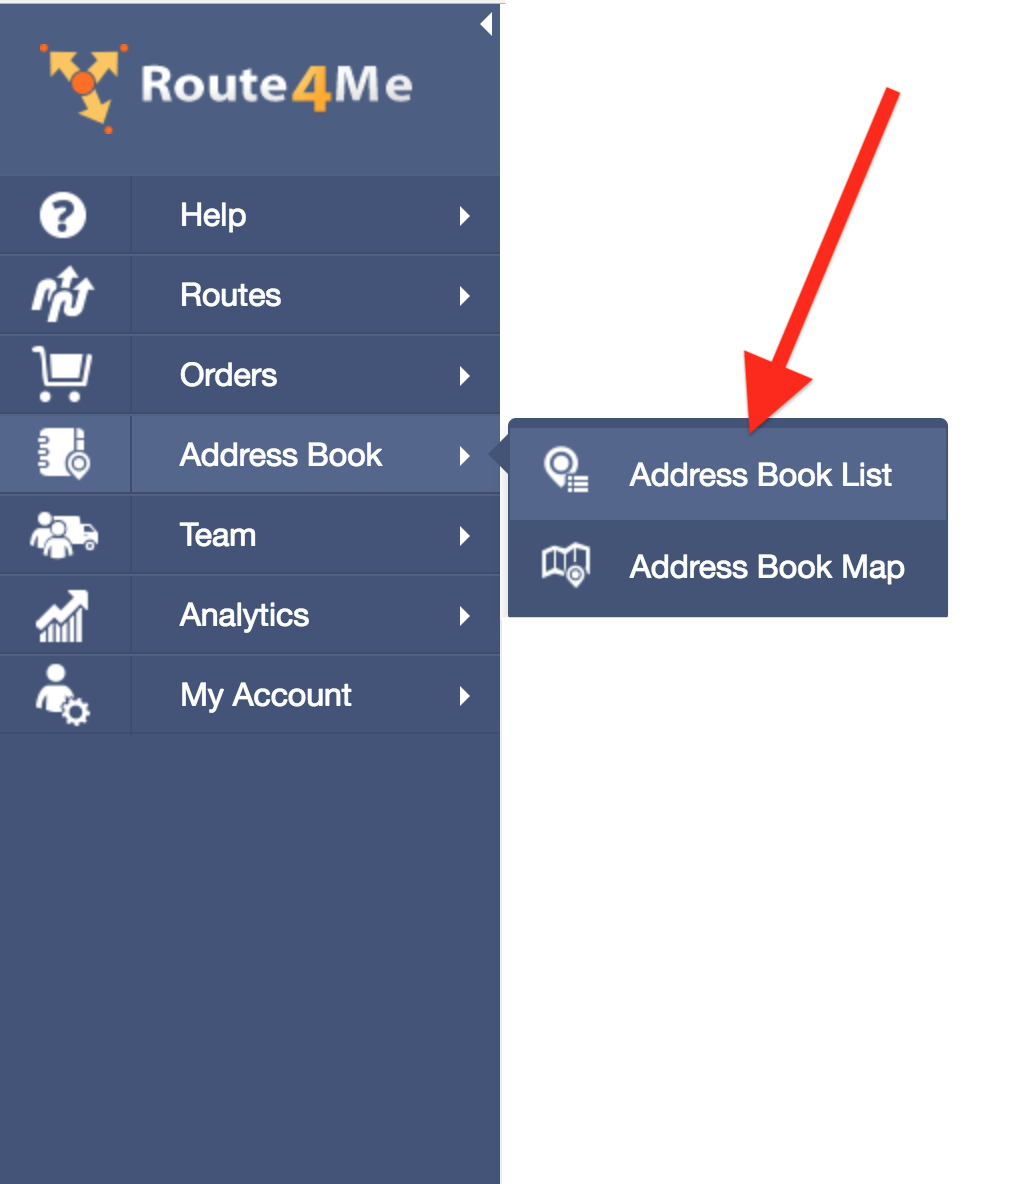 Adding Contacts to your Route4Me's Address Book